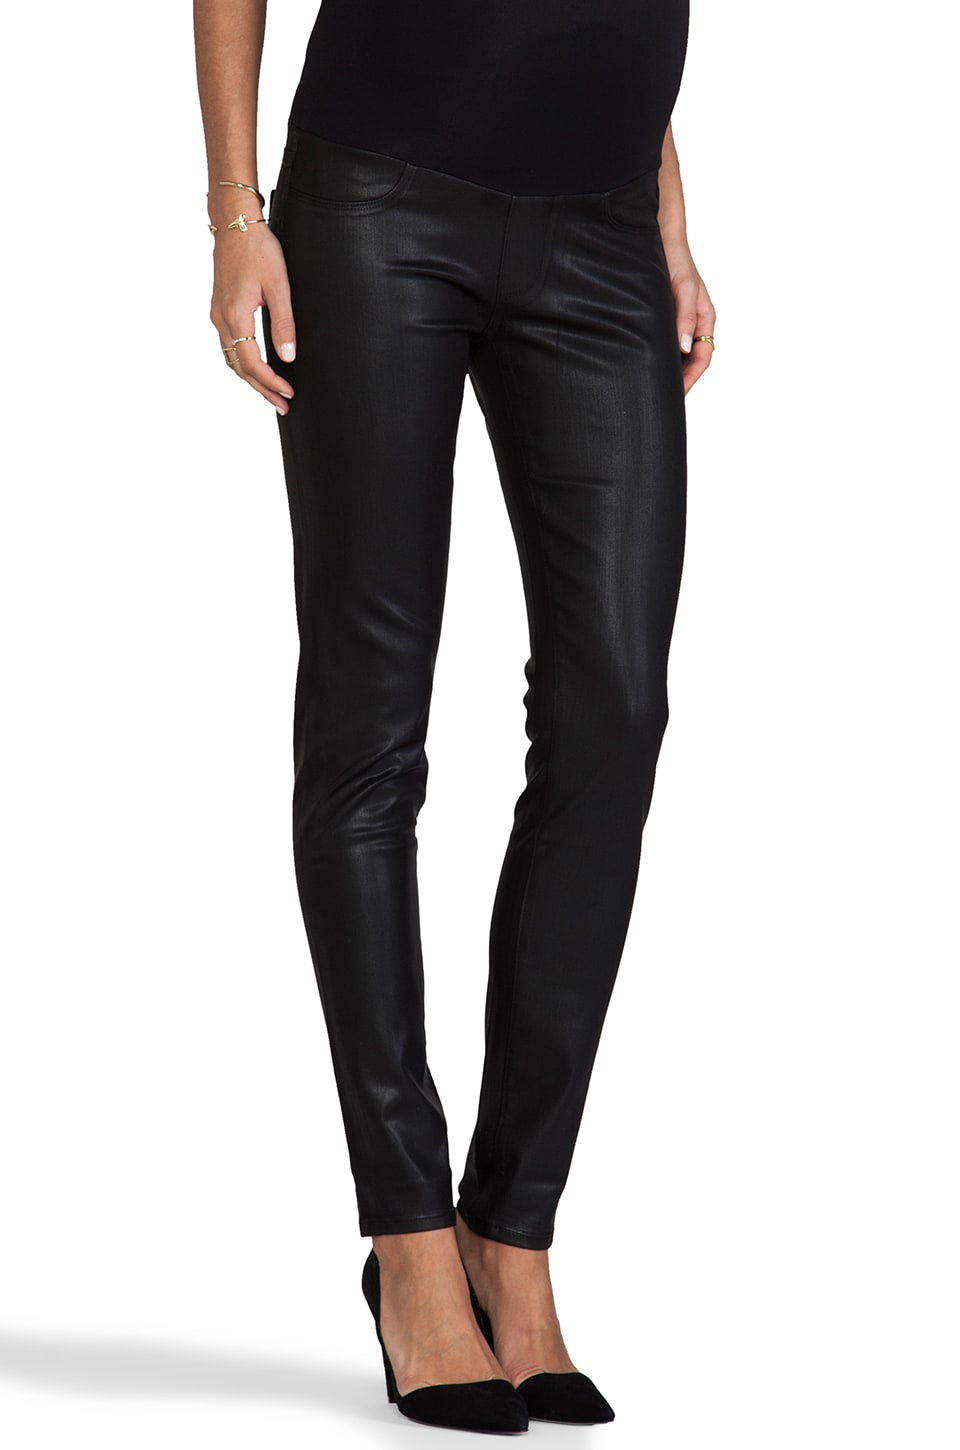 Paige Denim Maternity Verdugo W/ New Panel in Black Coated